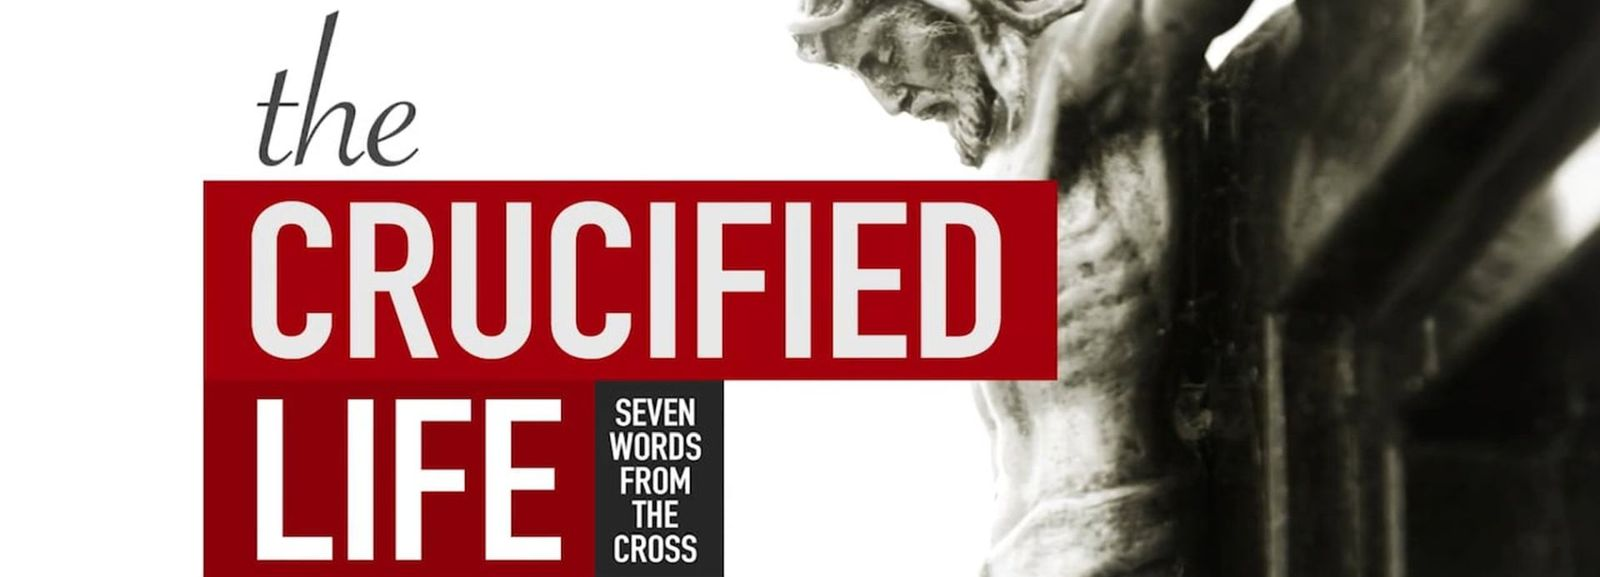 CRUCIFIED LIFE SESSION THREE